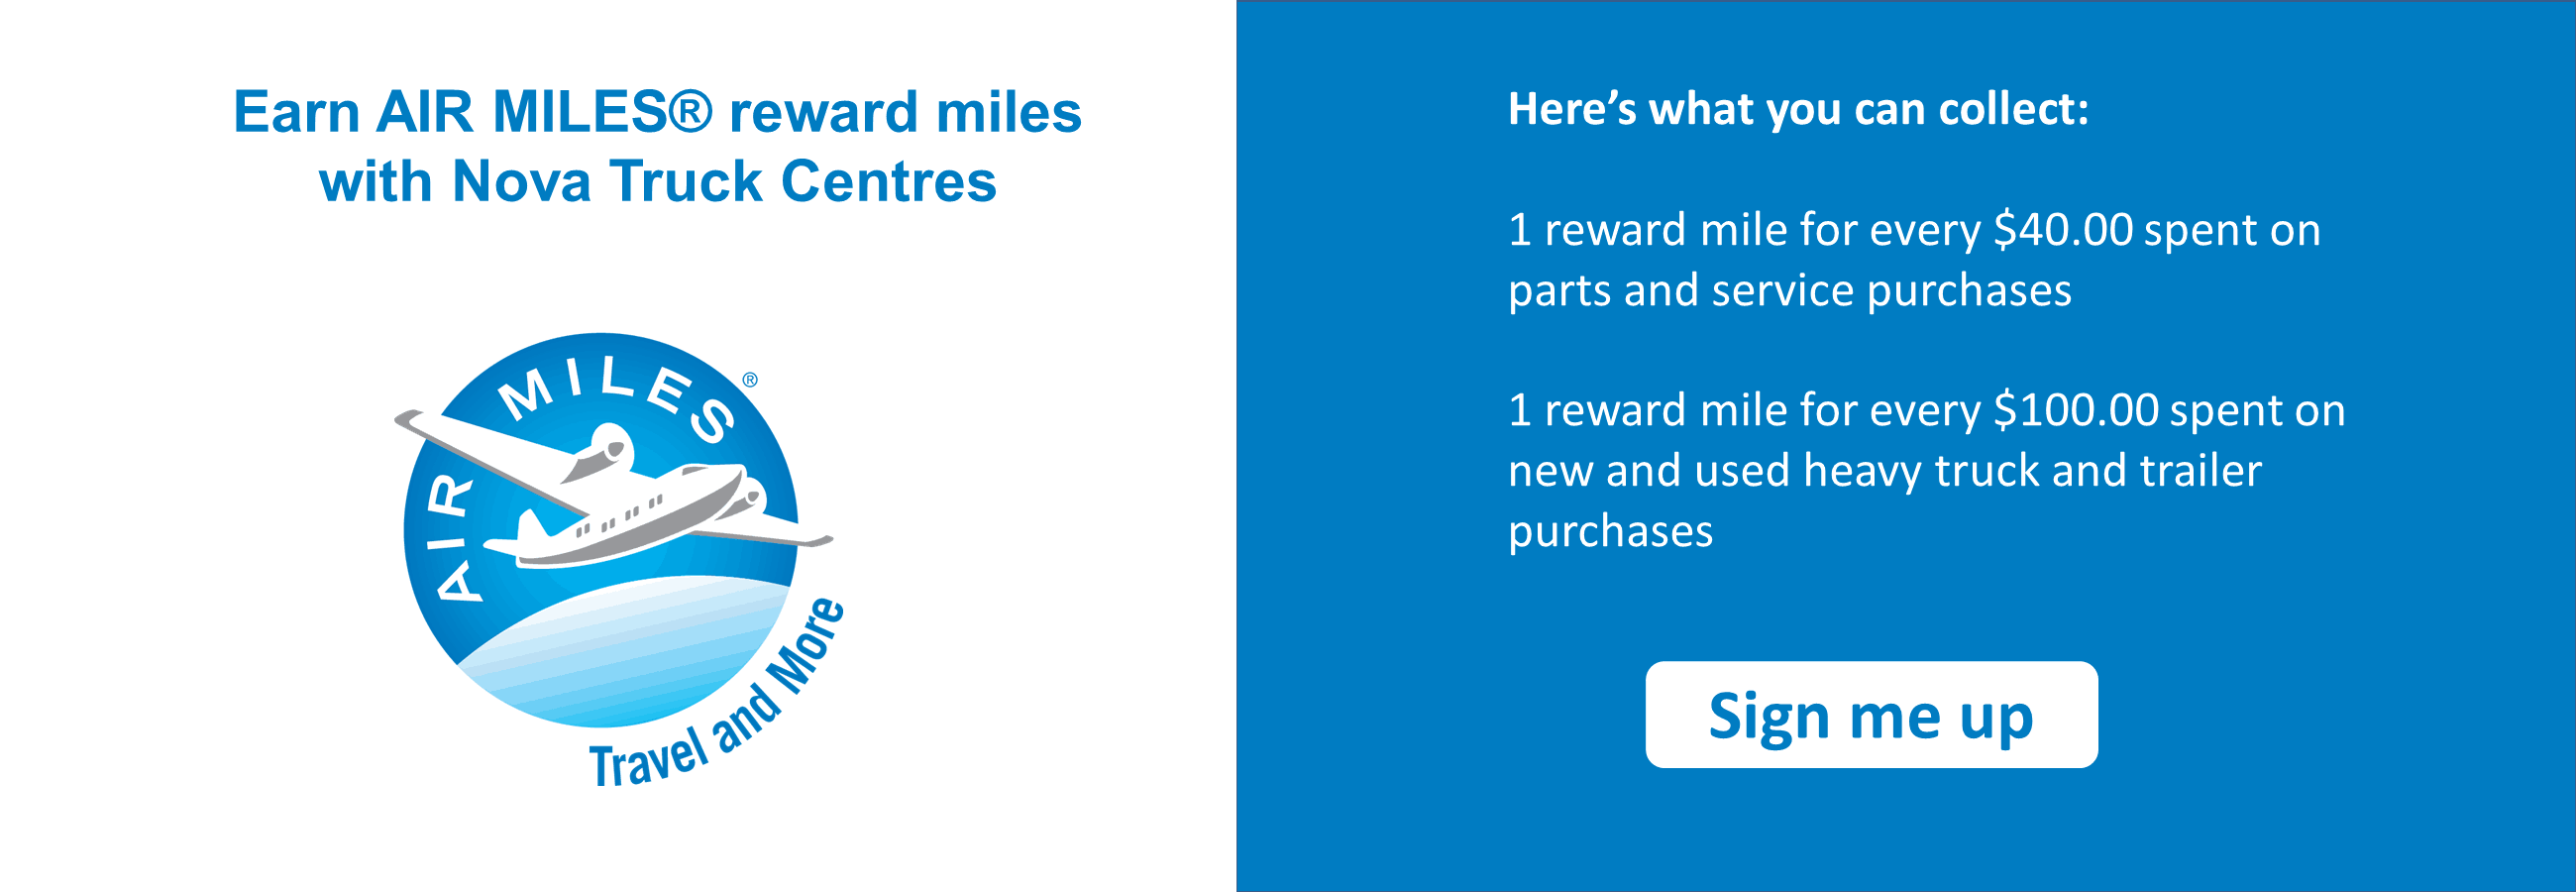 earn airmiles reward miles on parts & service & Sales